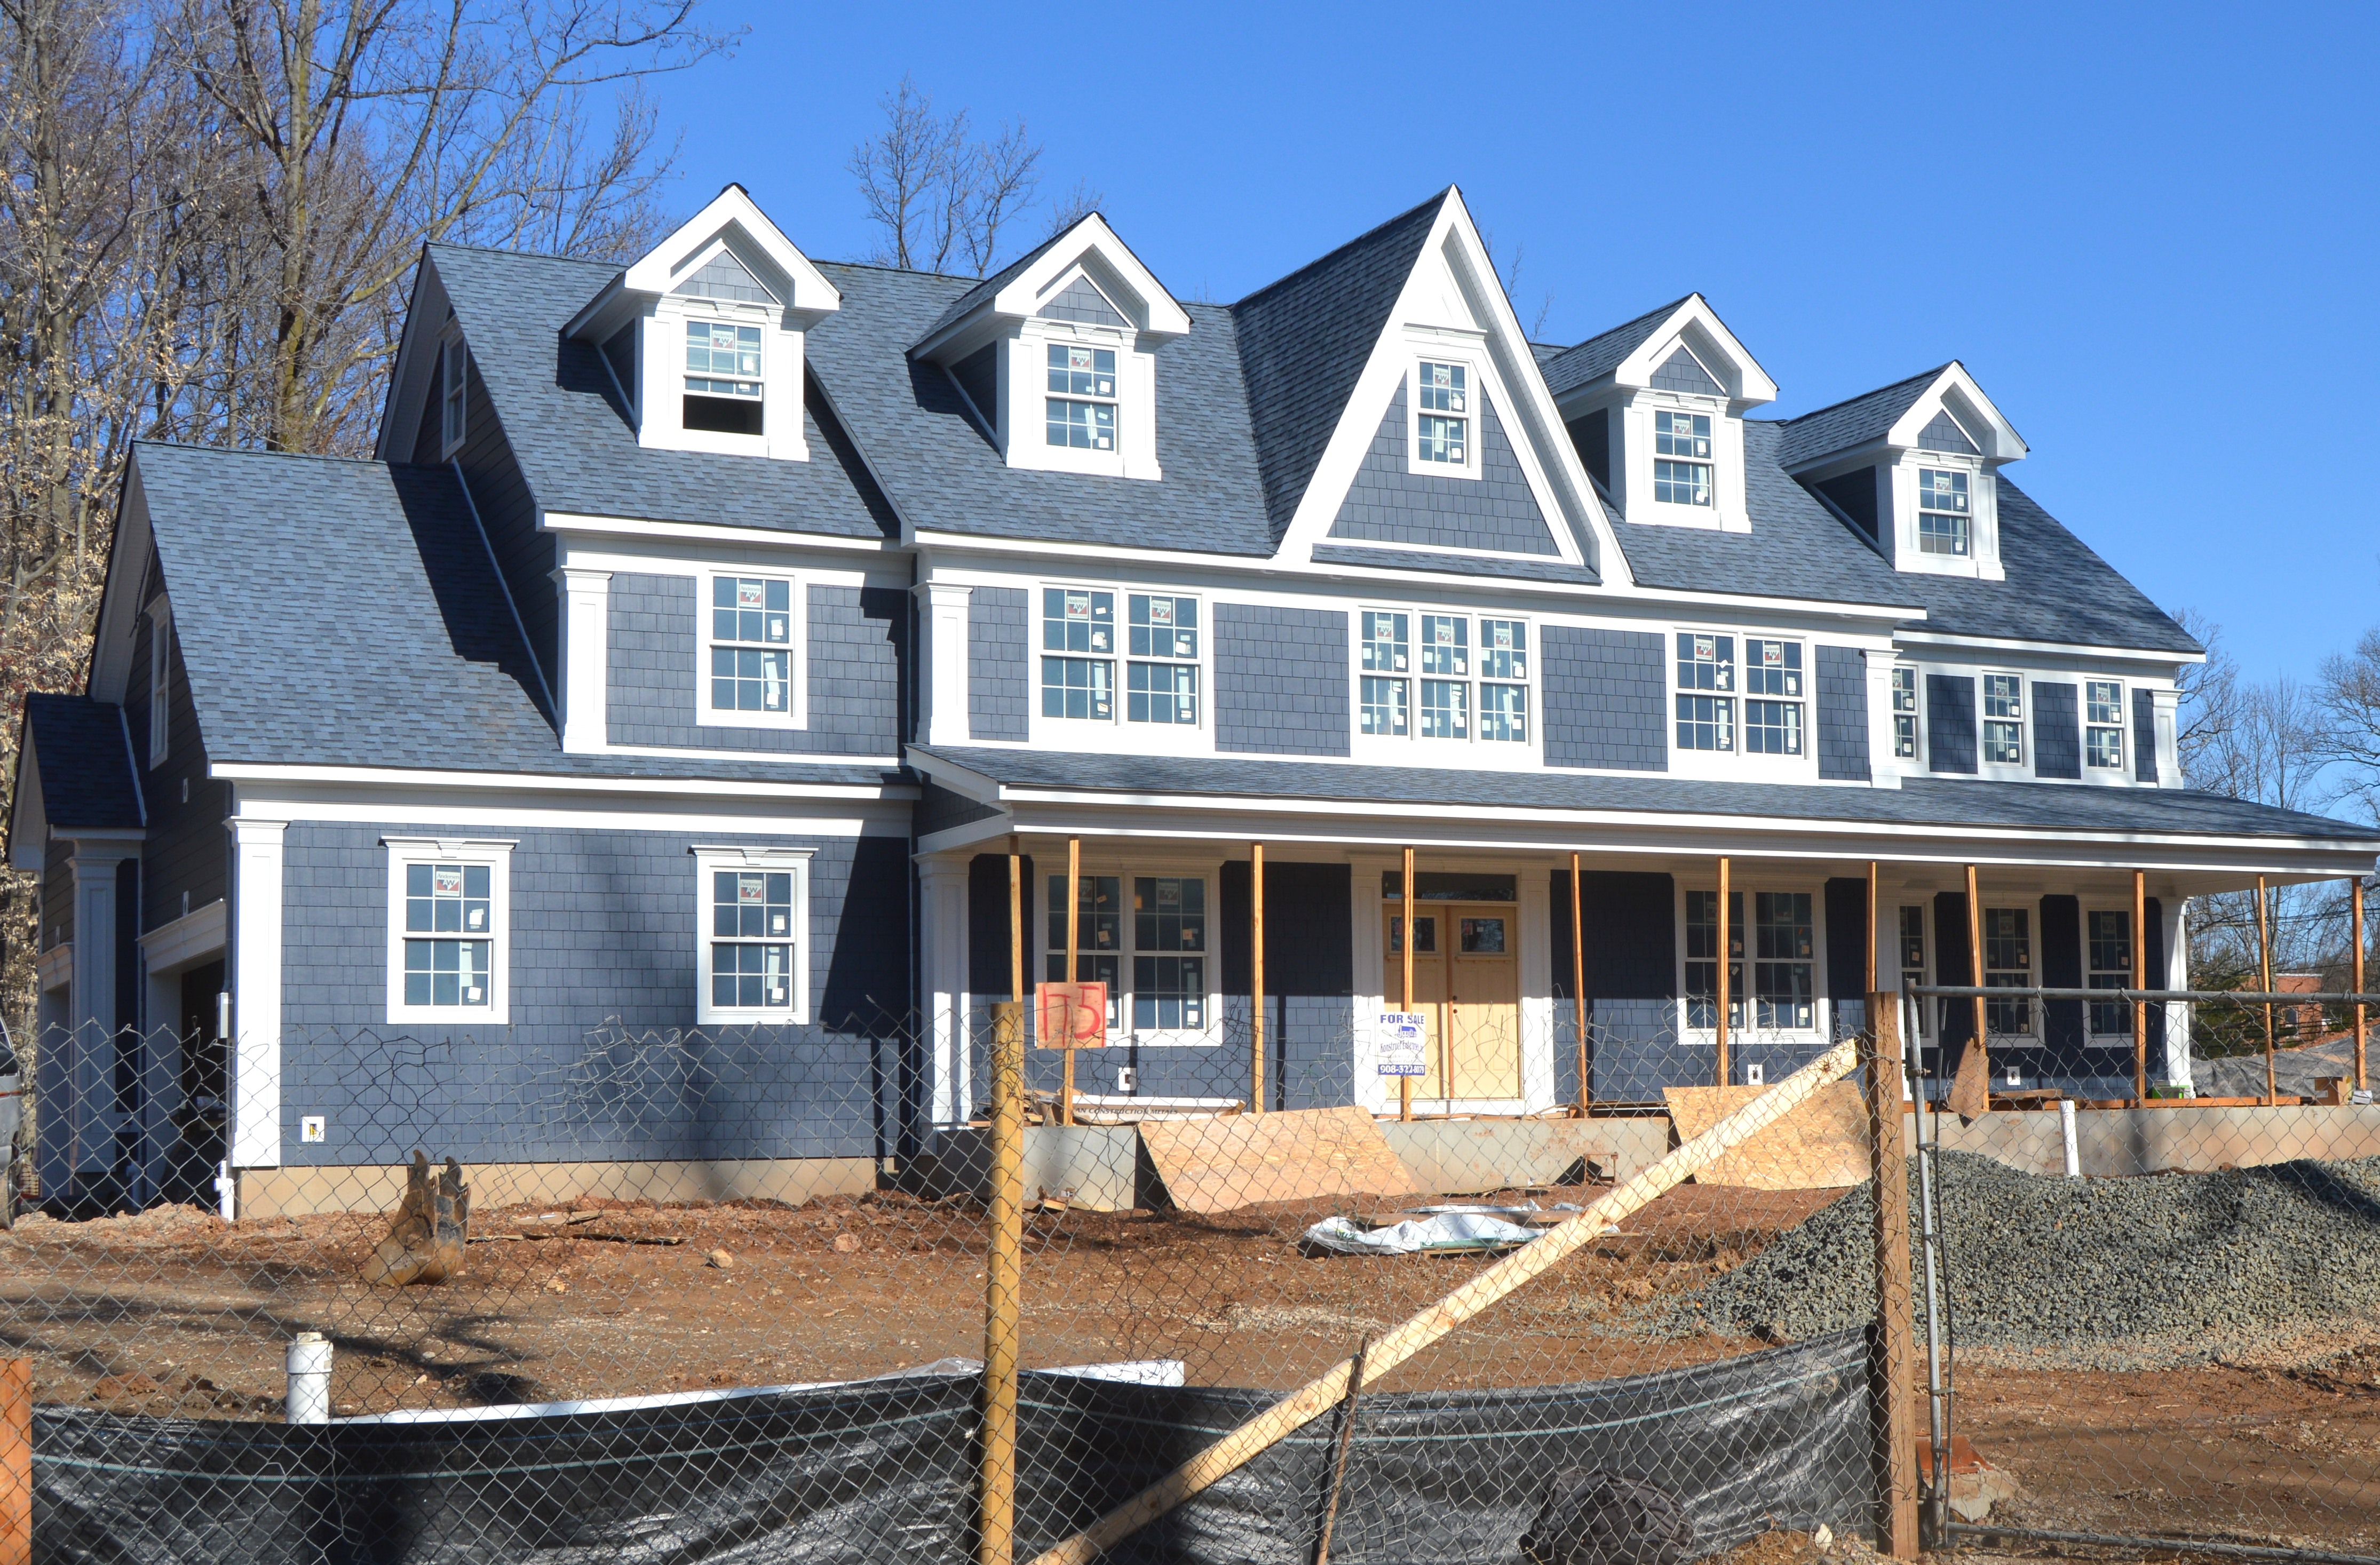 2611a96b24991642f16f_New_home_construction_on_Cooper_Road.JPG